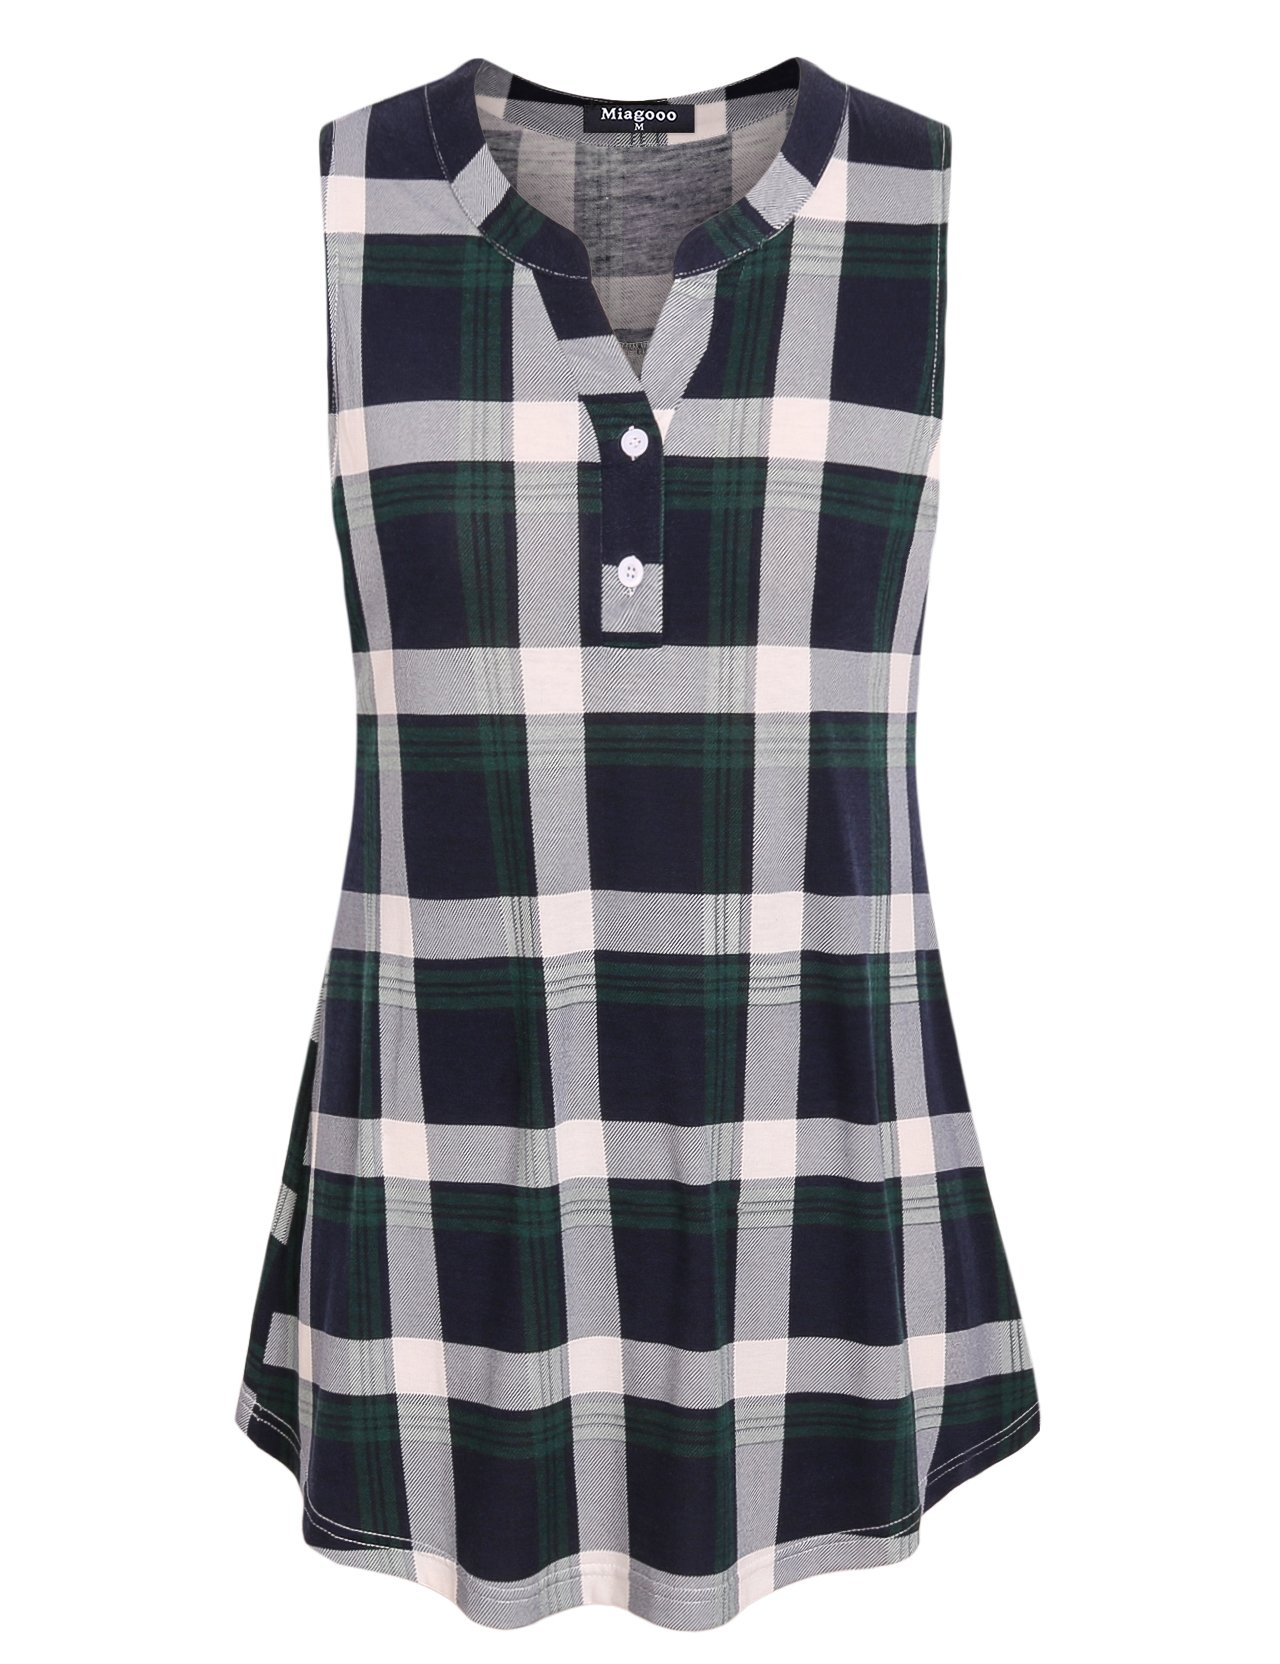 Miagooo Sleeveless Shirts Women, Ladies Tunic Tops Band Collar V Neck Pullover Blouse Sleeveless Easy Loose Fit Casual Plaid Print Tee Shirt Daily Wear Green XXL